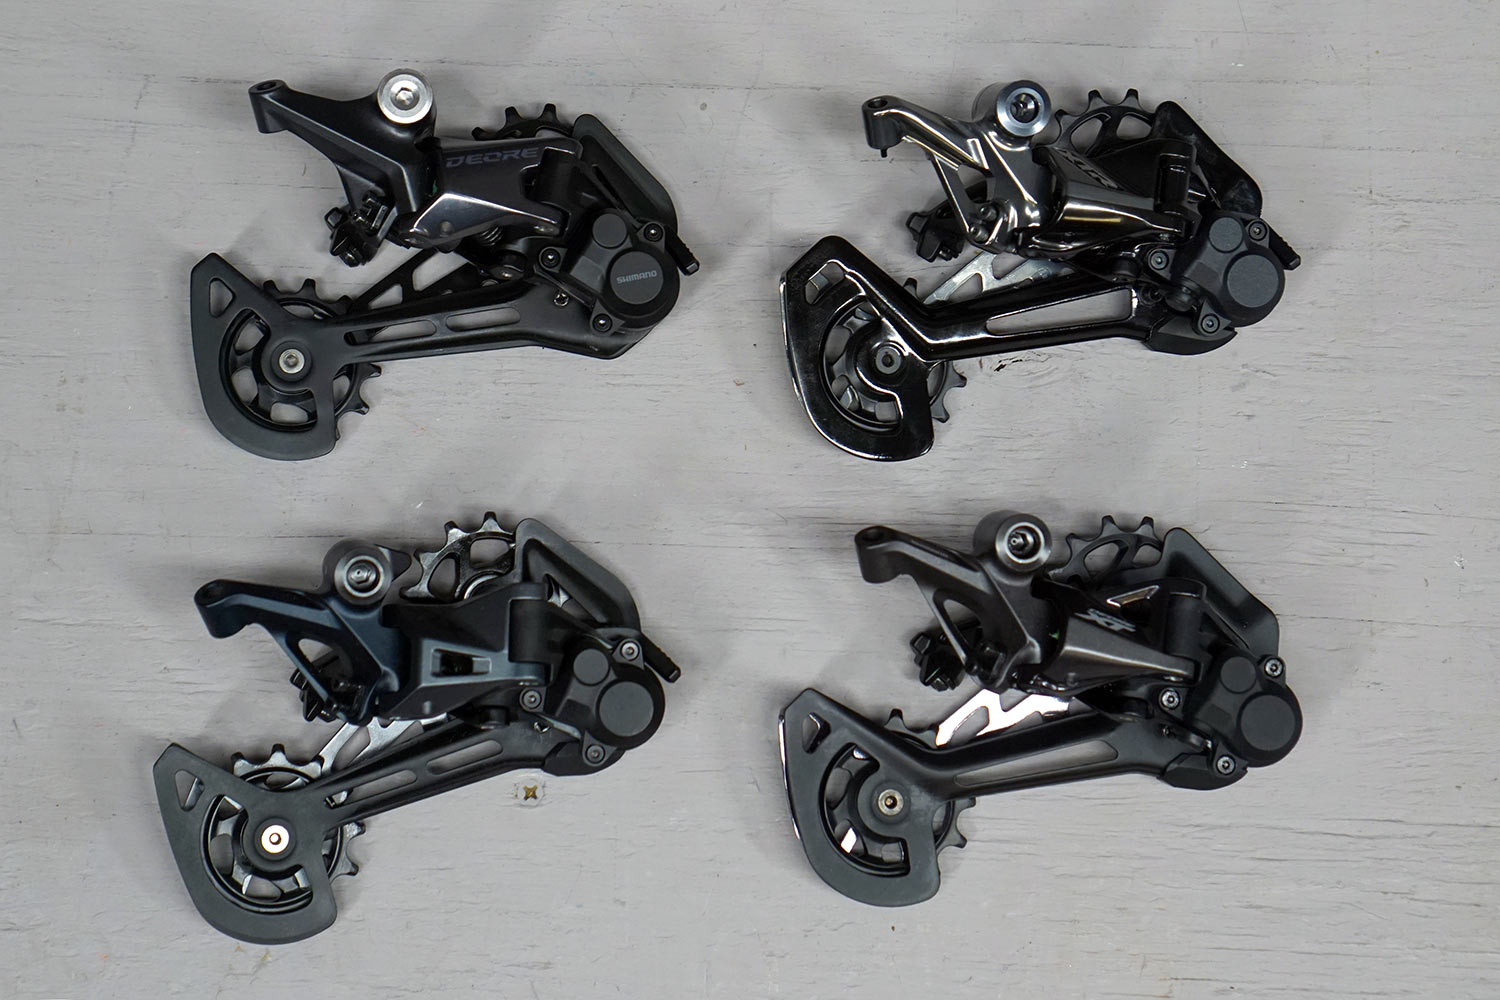 all four shimano 12 speed MTB rear derailleurs compared side by side